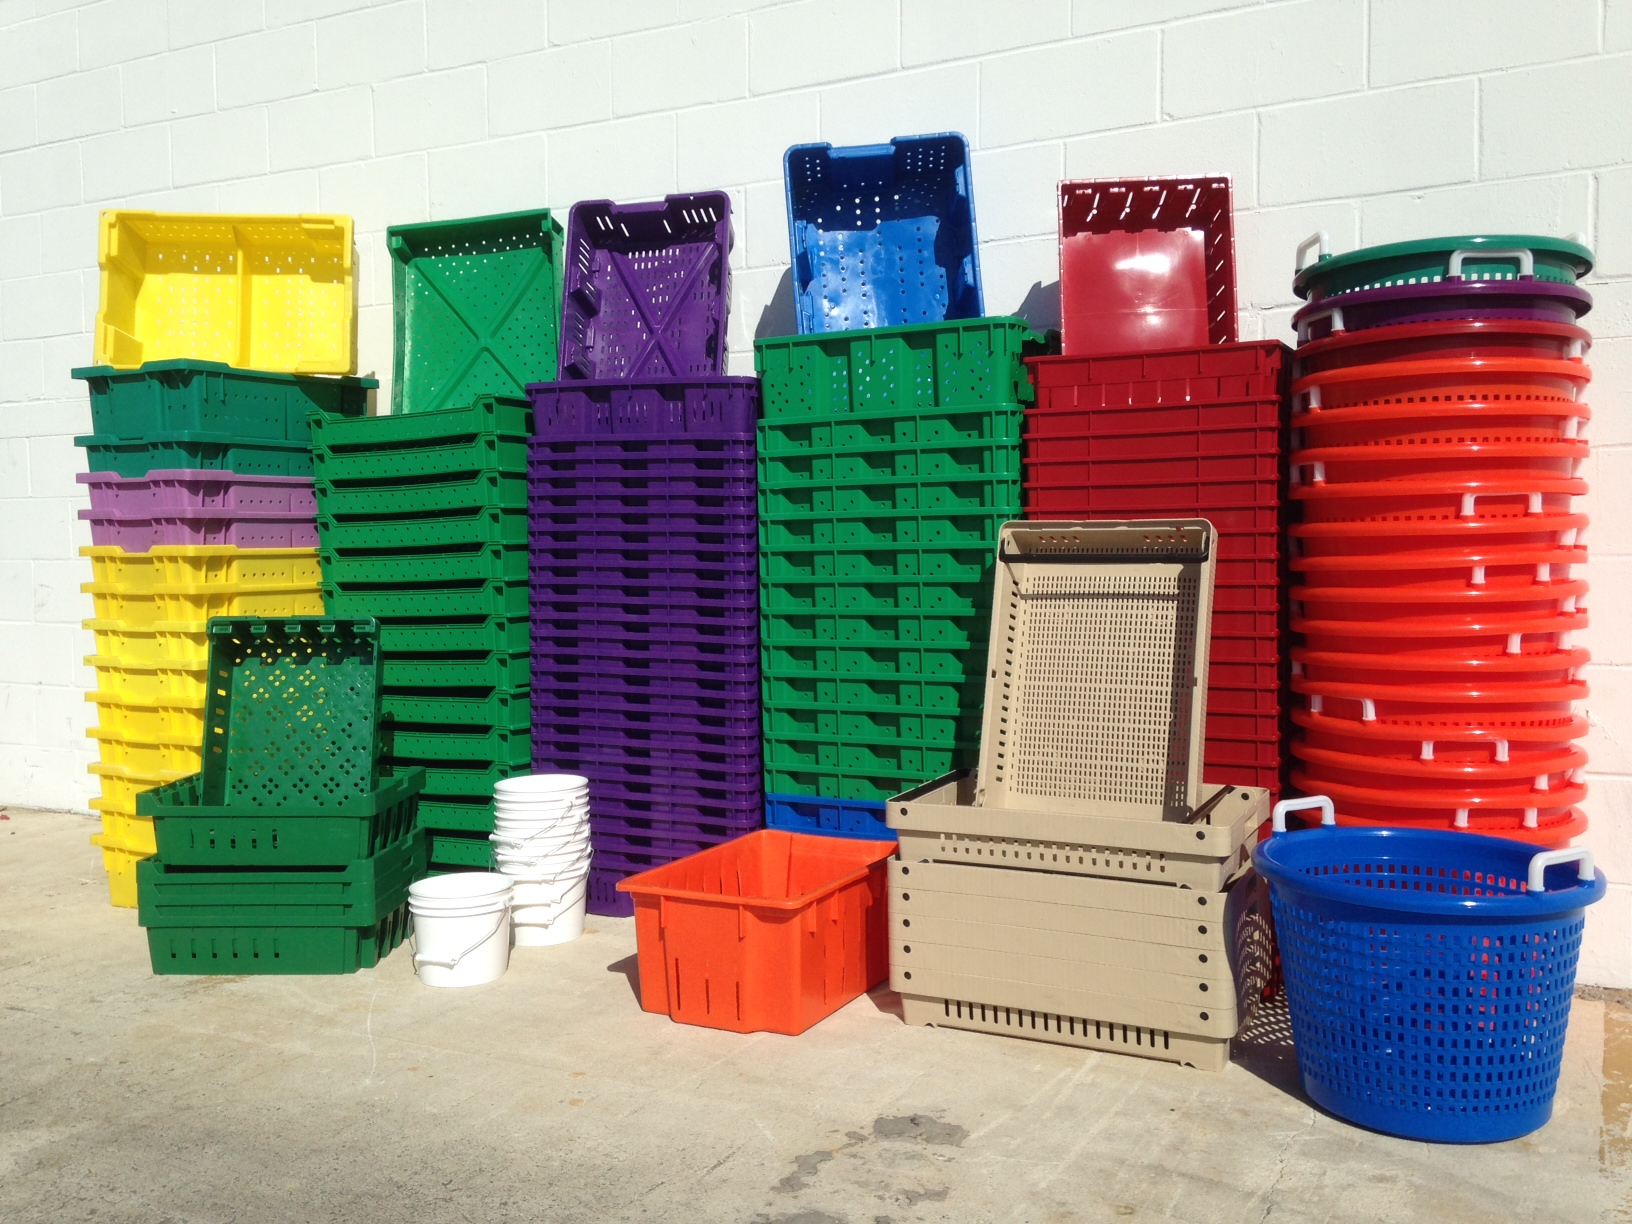 Agricultural Baskets, Lugs, and Bins for Harvest and Transport